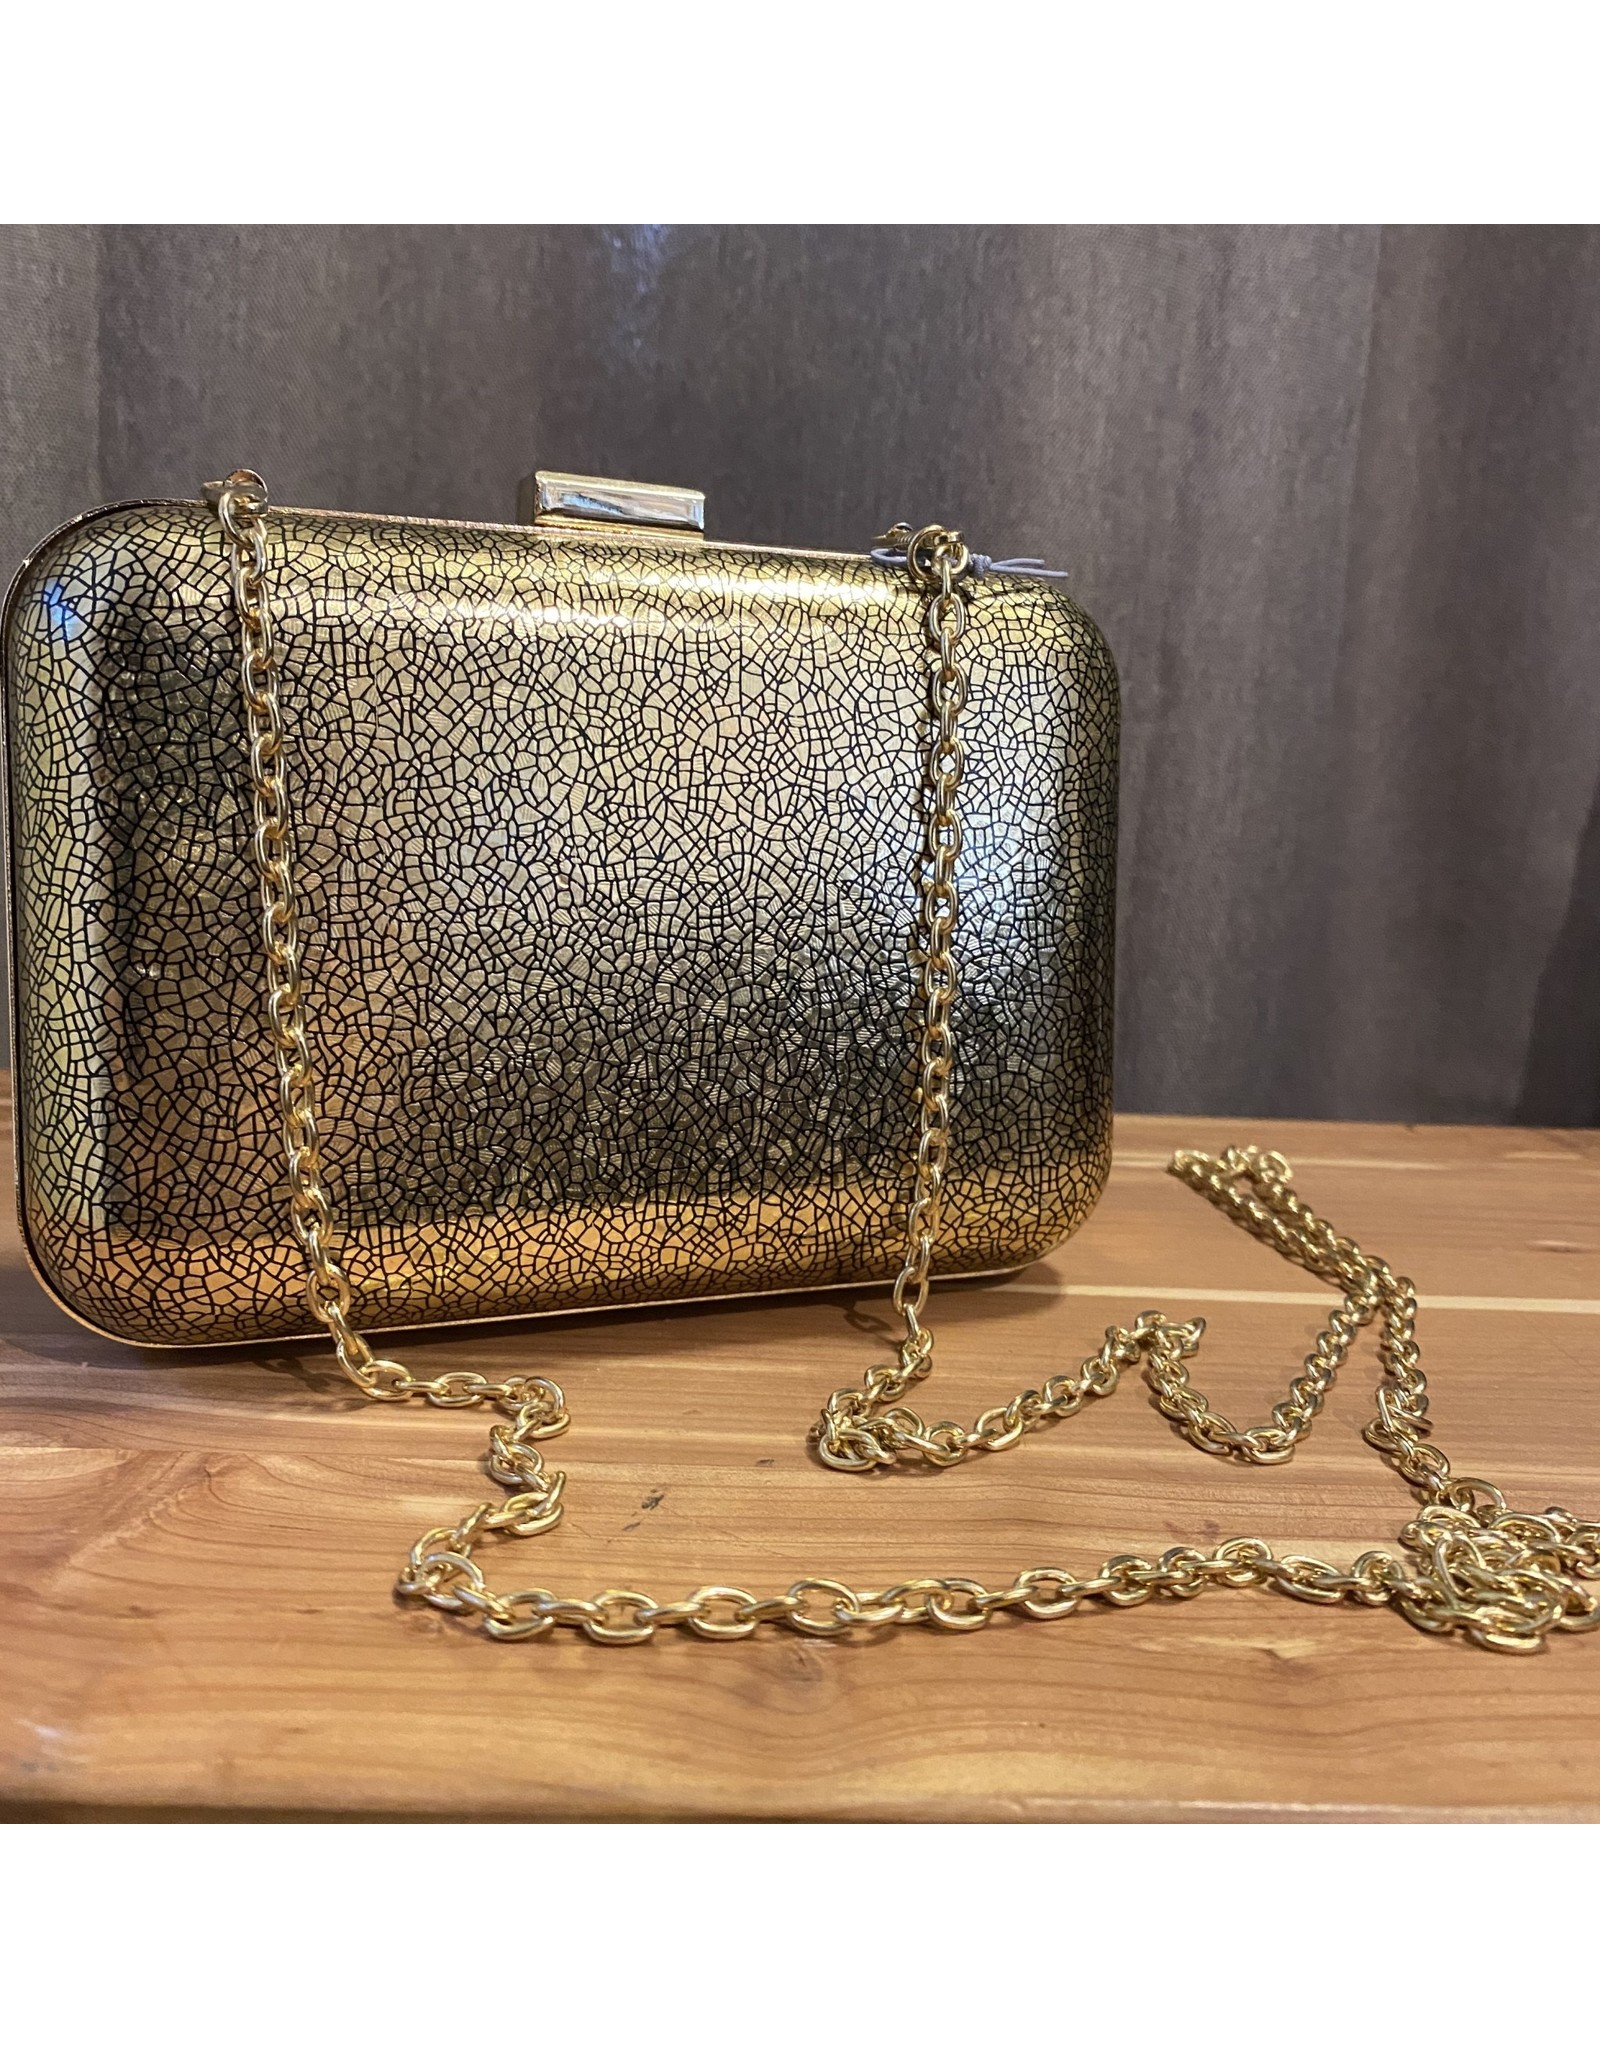 Inge Christopher Juliana Gold Clutch